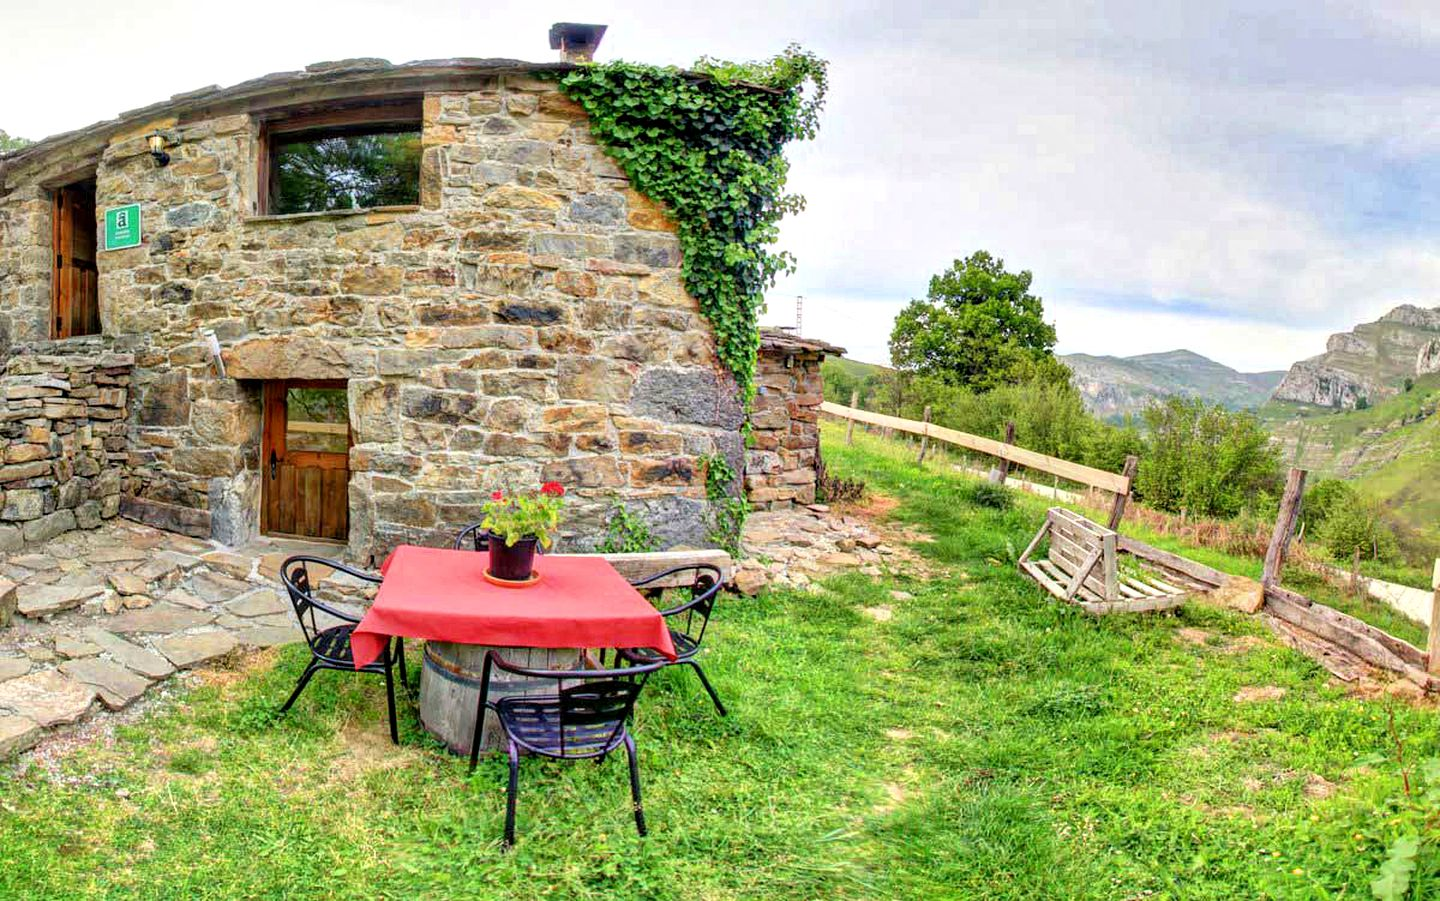 Cottages (San Roque de Riomiera, Cantabria, Spain)